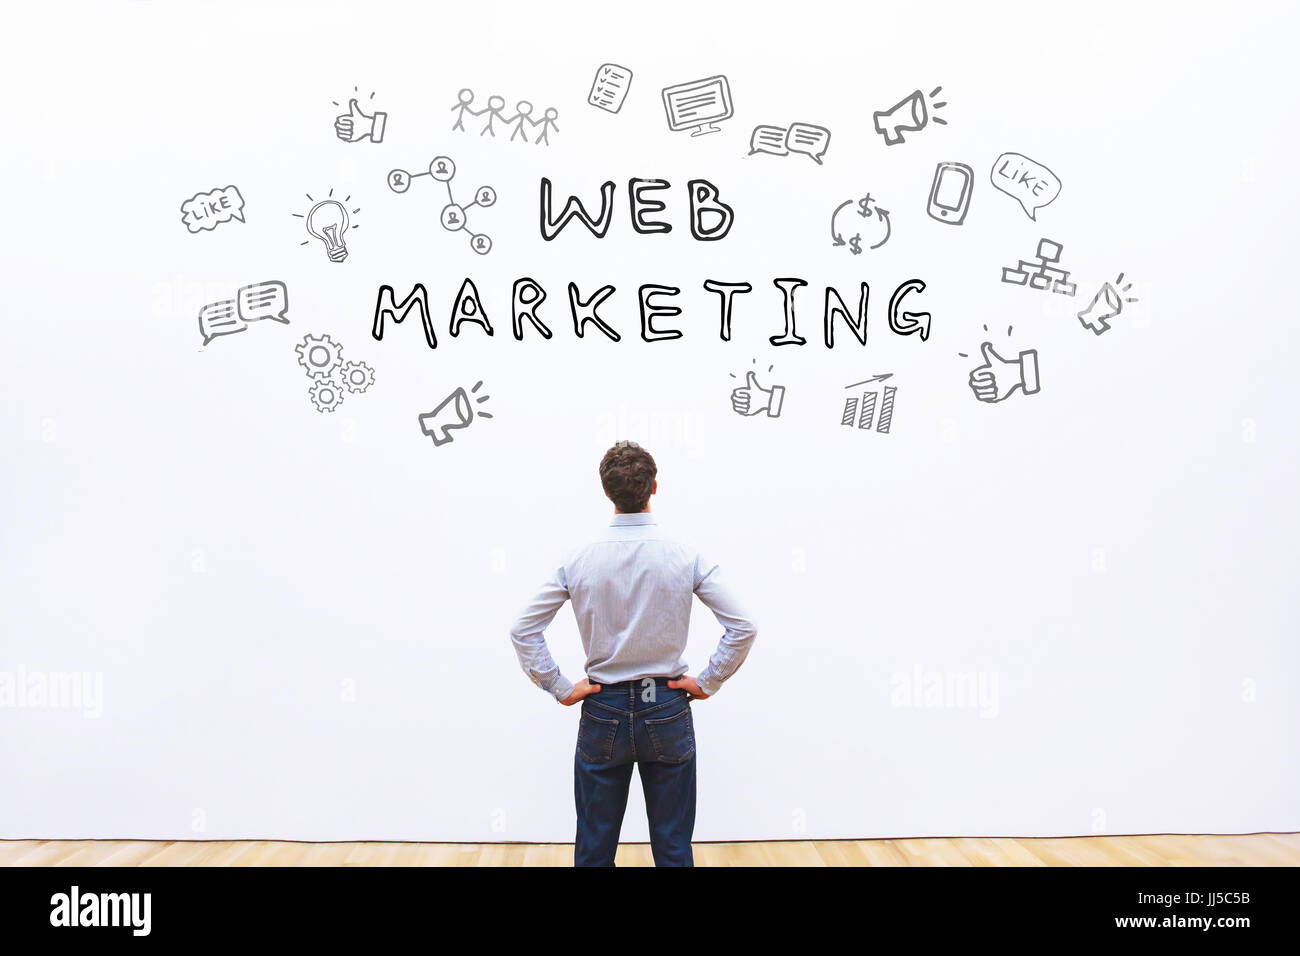 web marketing concept - Stock Image